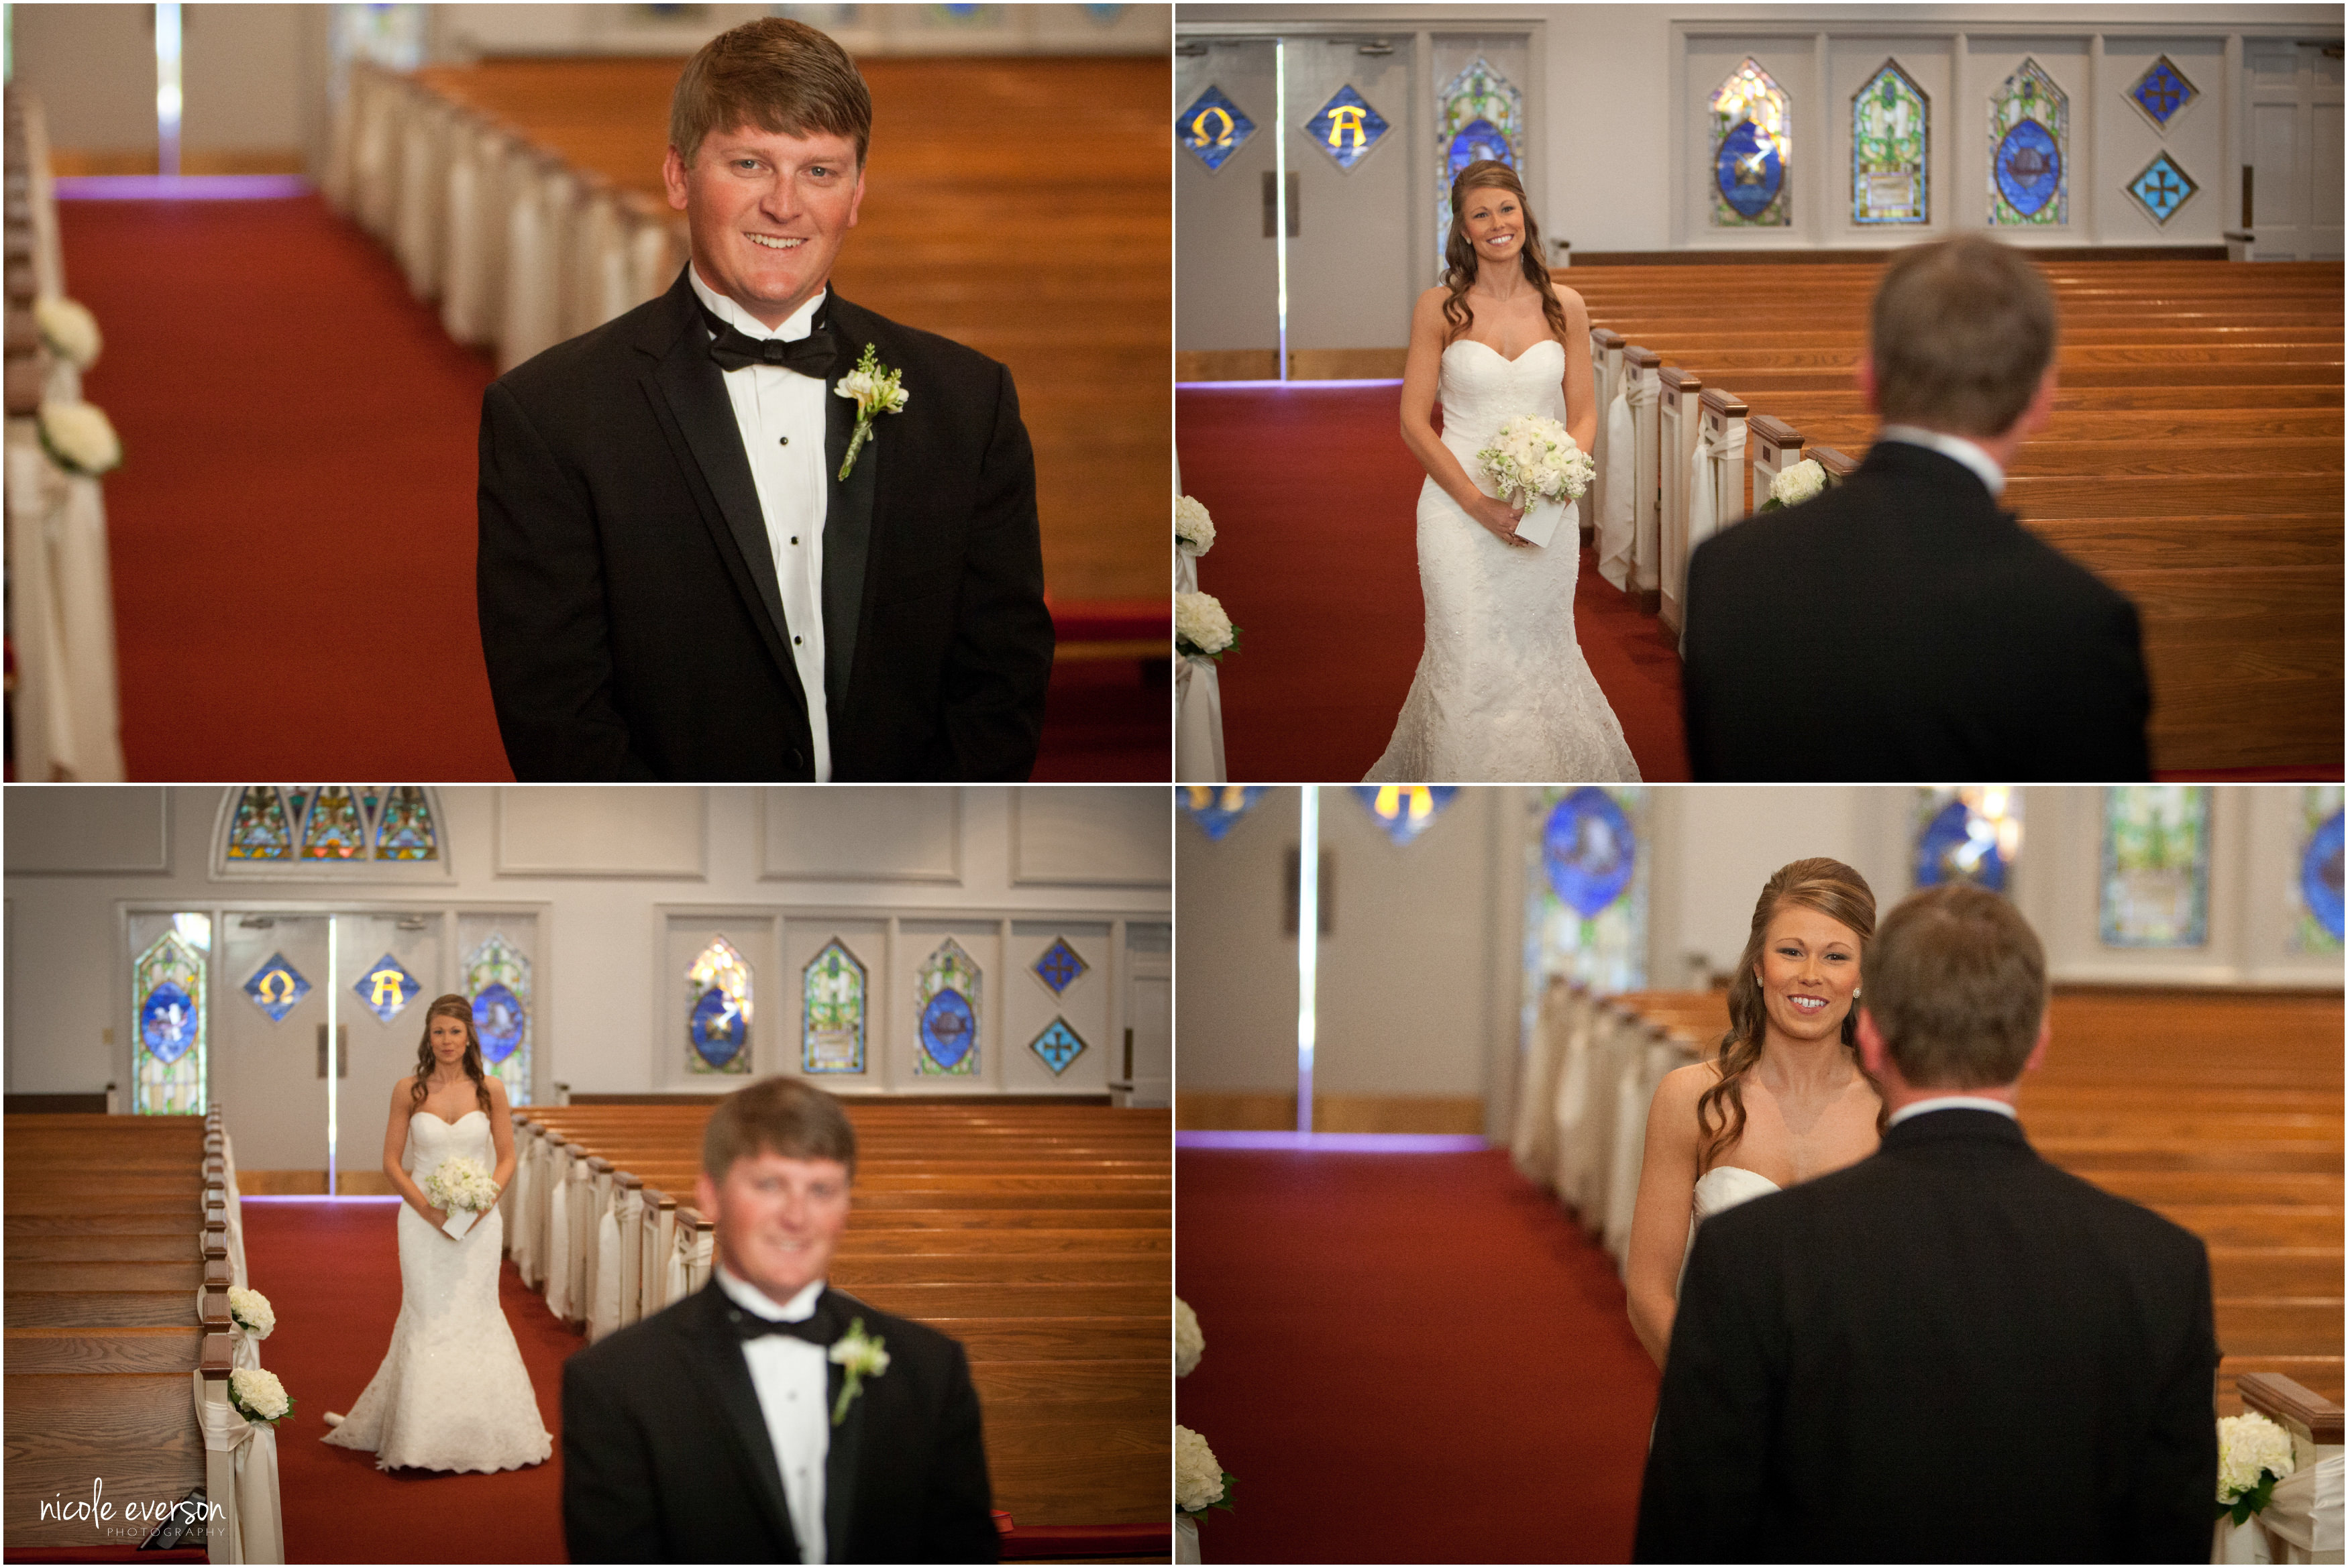 DeFuniak Springs church wedding first look